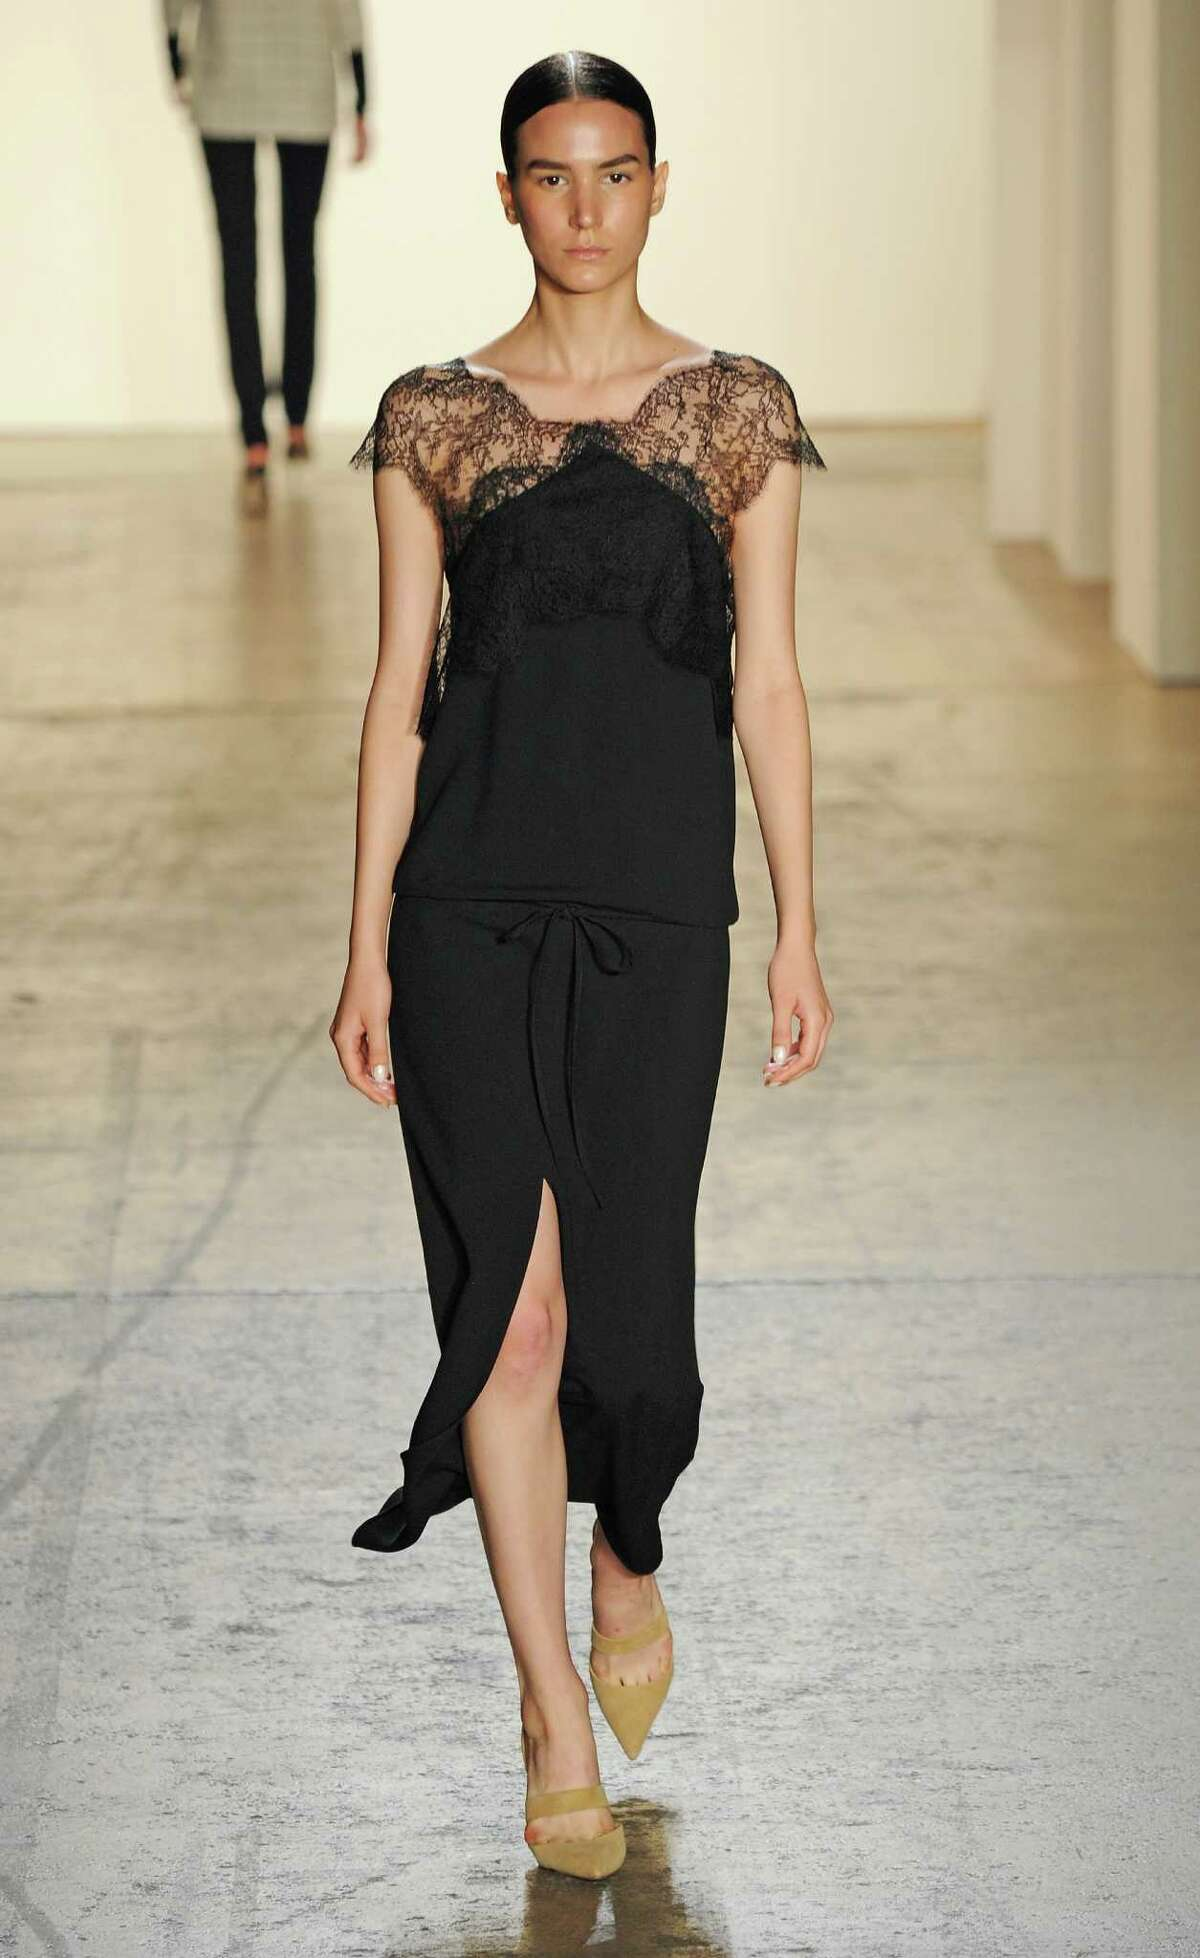 Longer silhouettes in dresses and skirts will be trending for spring 2015 trend as seen in this look from Wes Gordon.